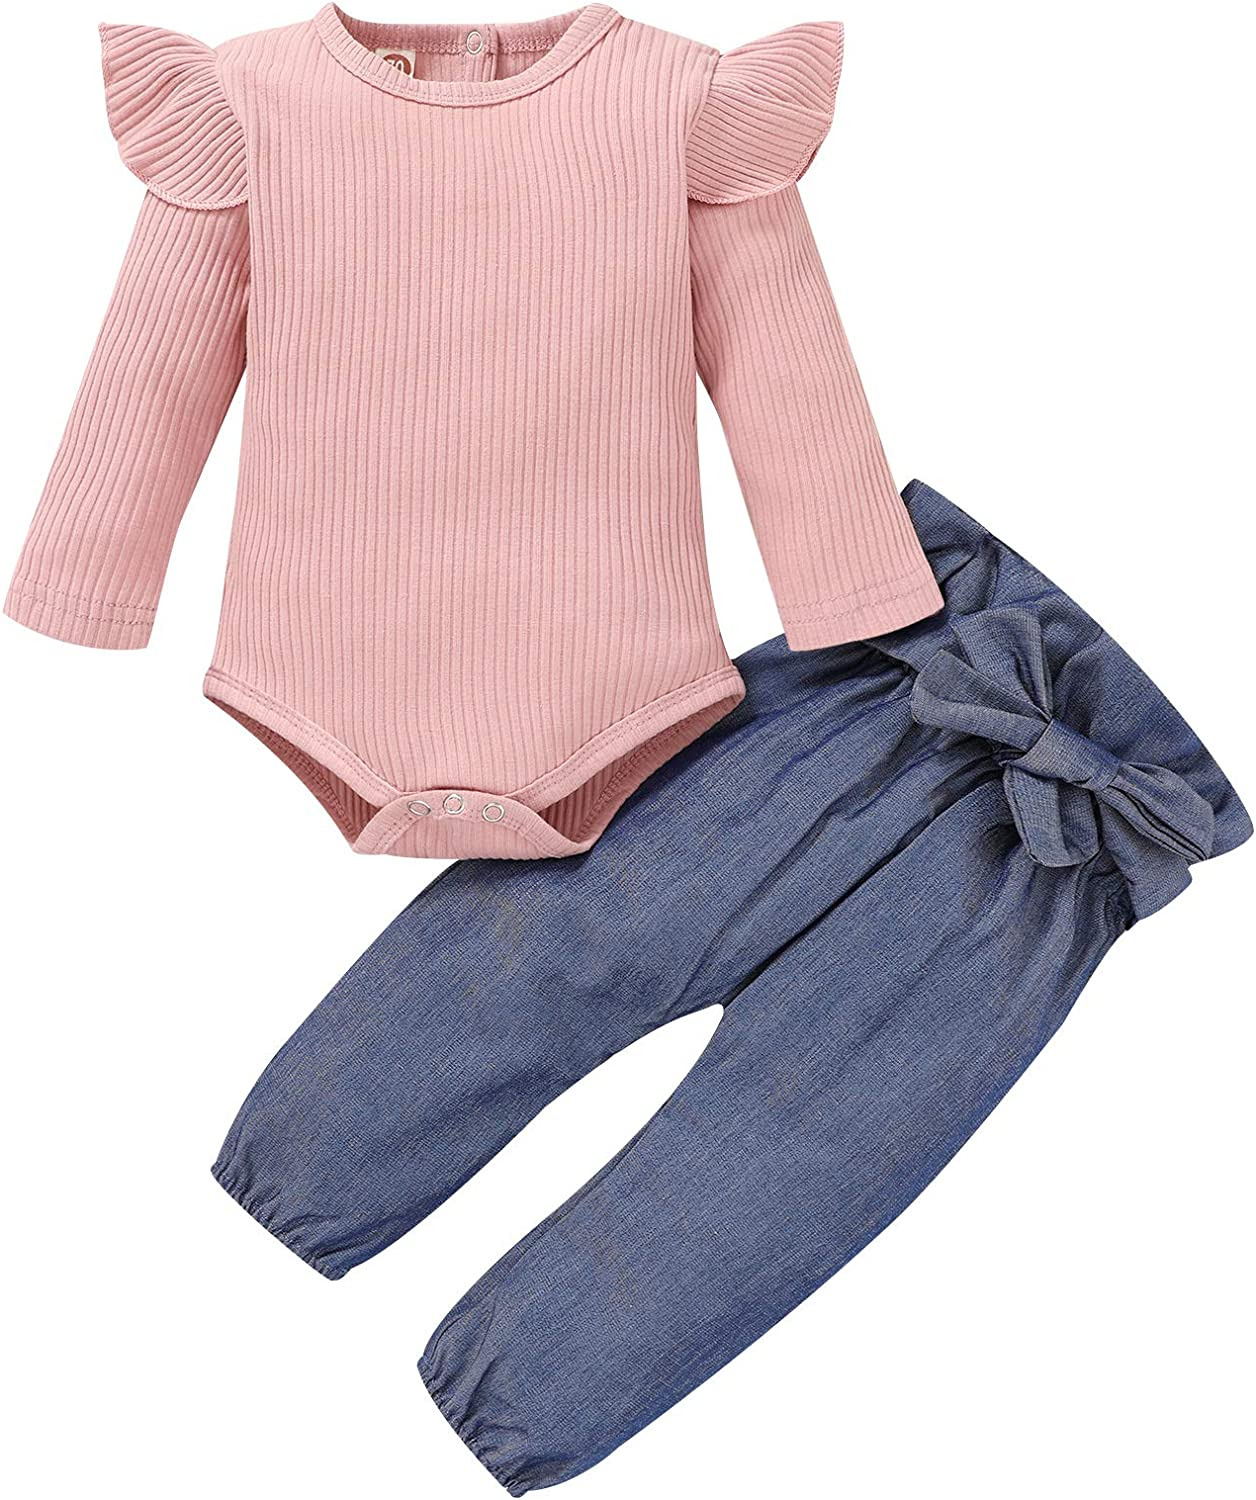 Newborn Baby Girl Outfits,Infant Long Sleeve Ruffle Tops Romper Bodysuit and Floral Pants Clothes with Headband 3PCS